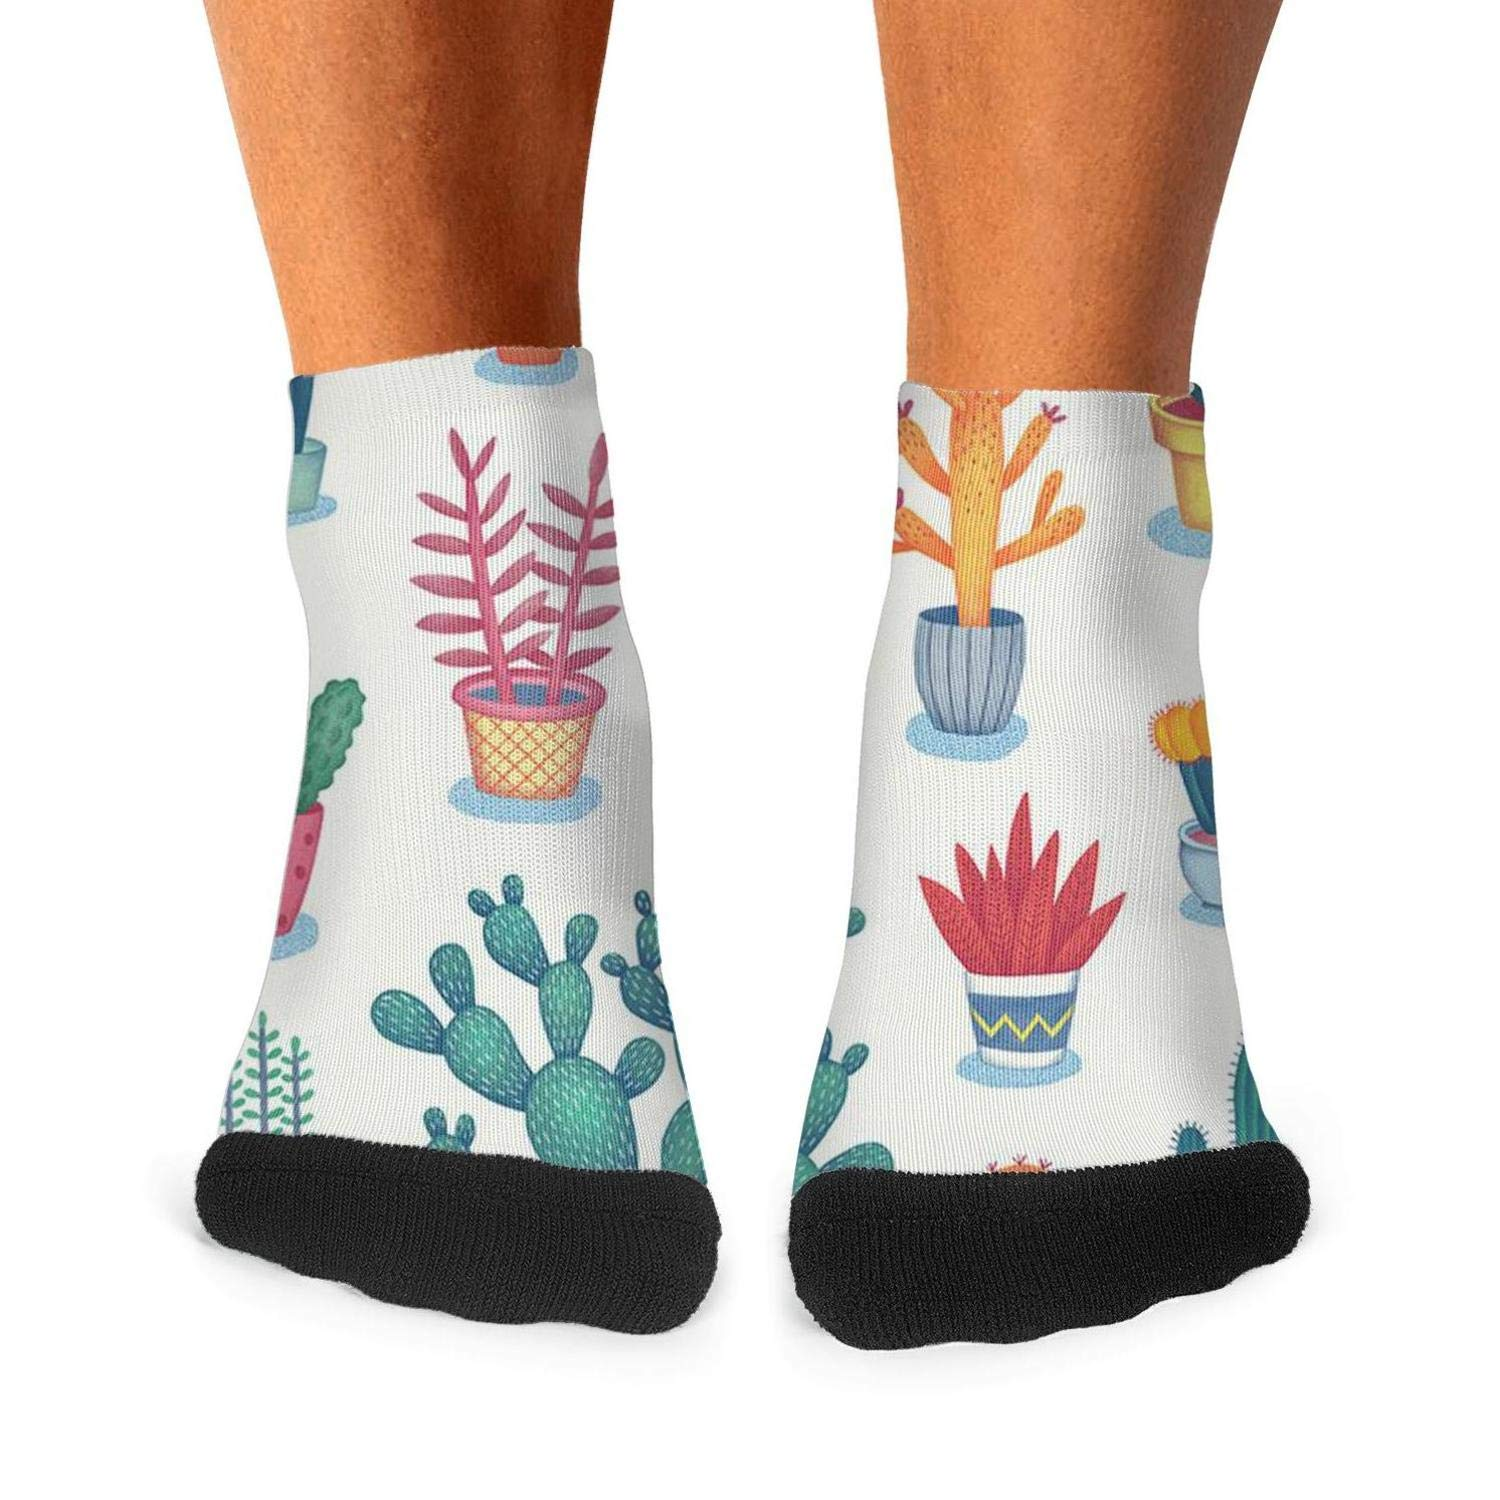 The Clipart Cactus Patterns mens socks casual breathability compression socks cute short socks Unisex